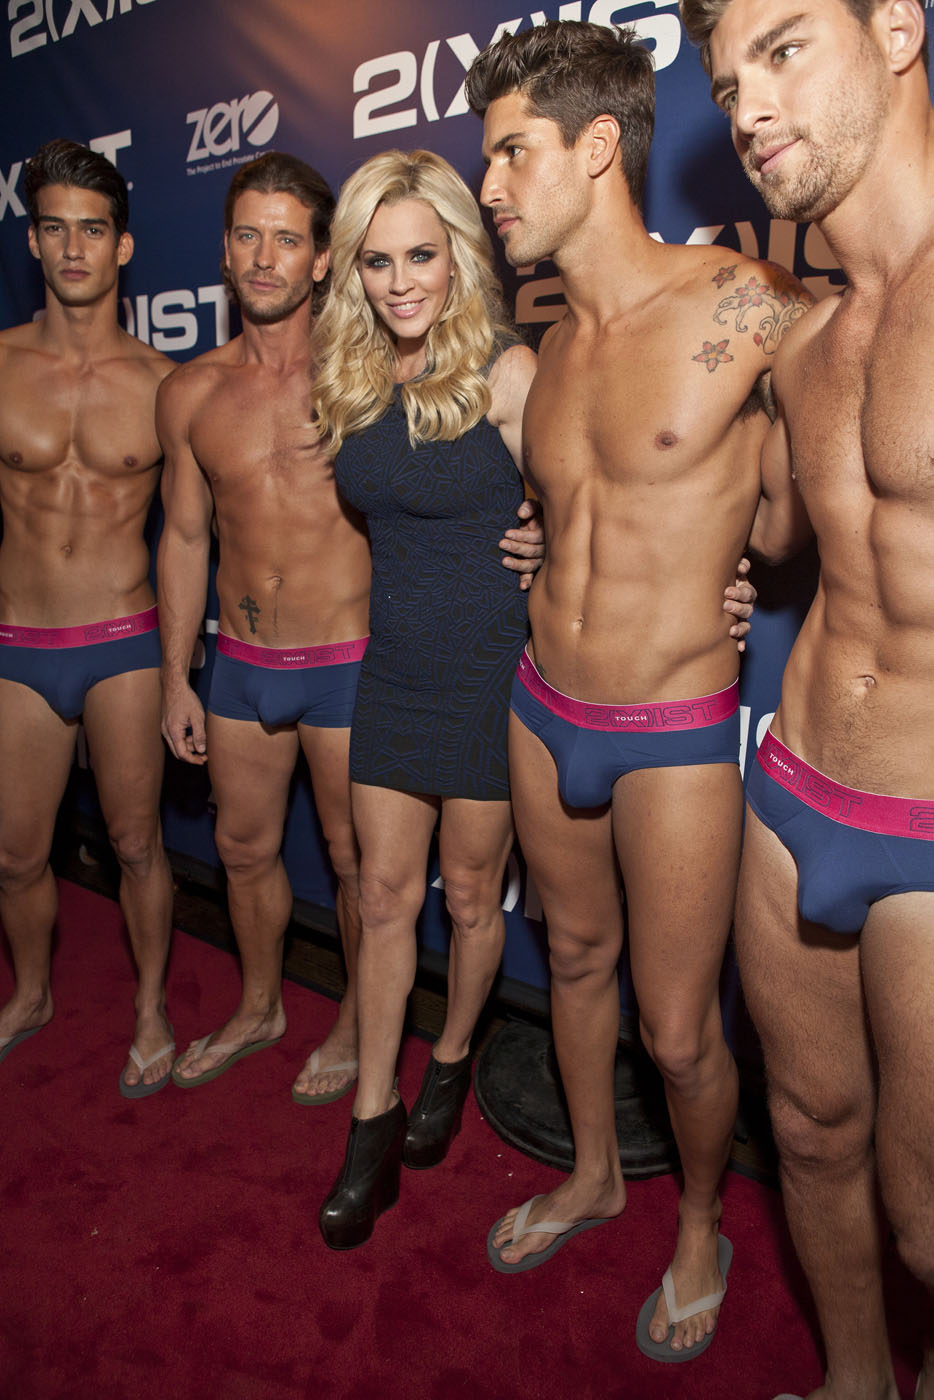 Male underwear fashion show video 37